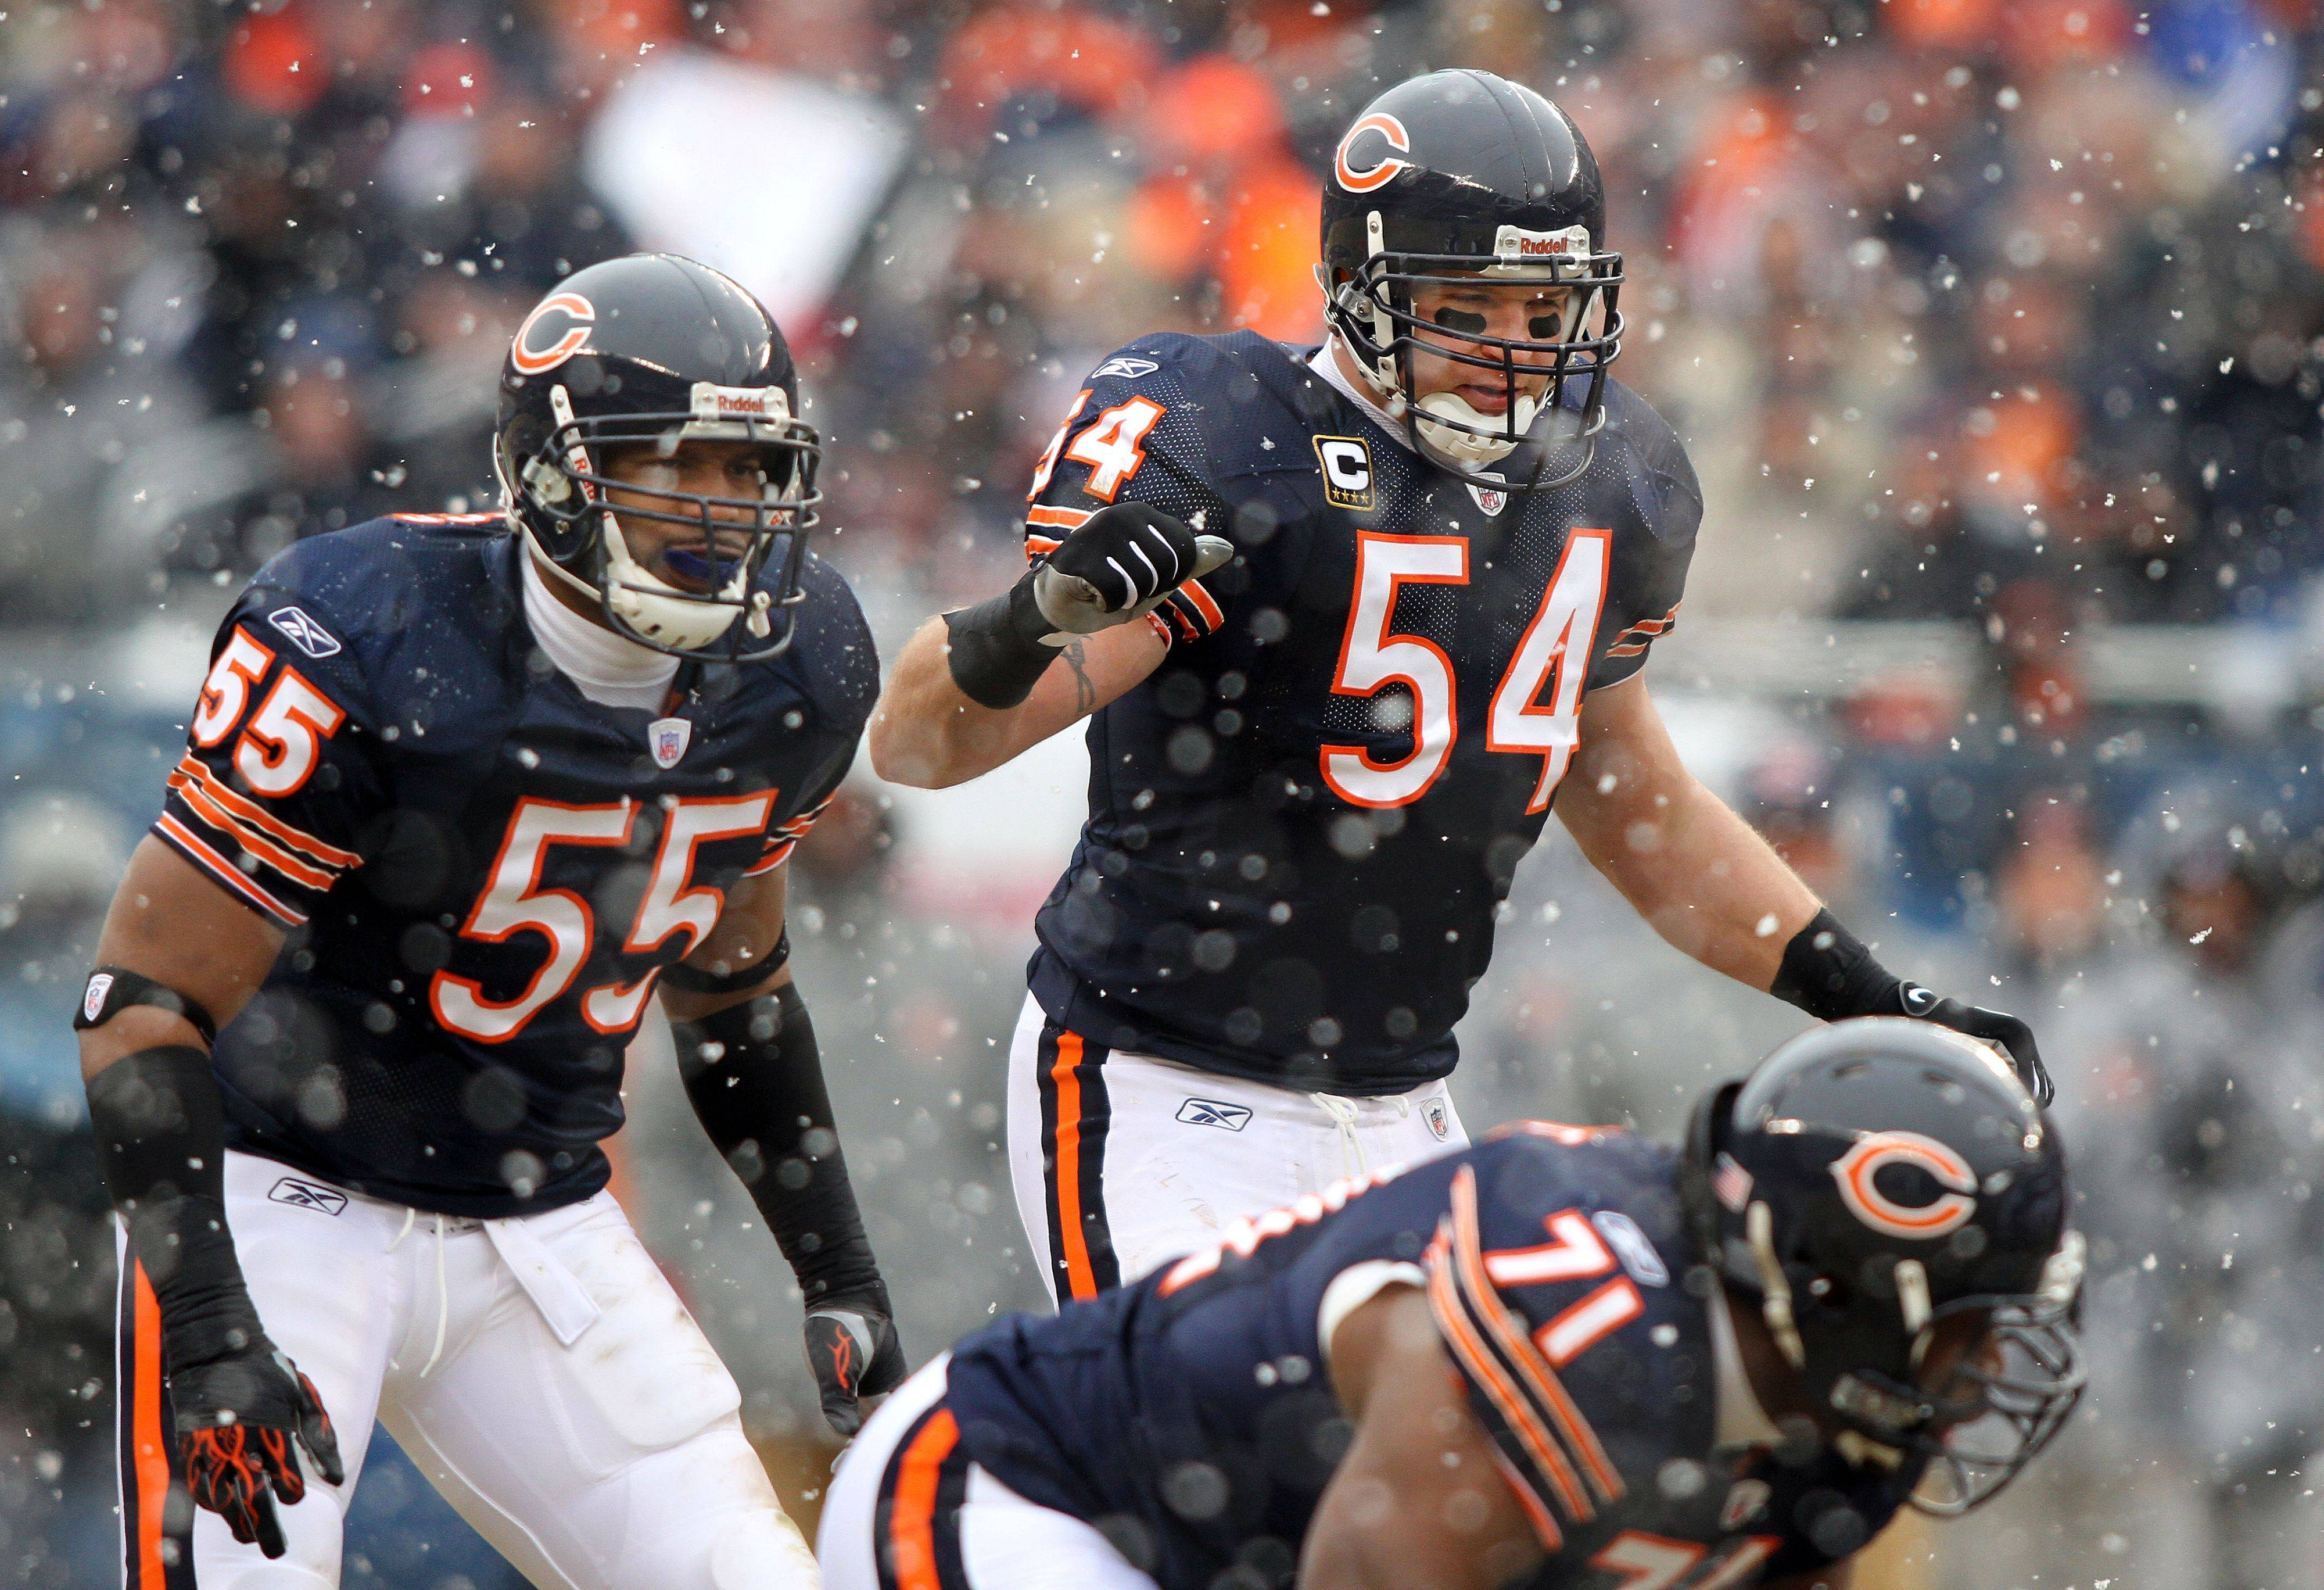 Bears head coach Lovie Smith liked the play of his defense, led by linebackers Lance Briggs and Brian Urlacher against the Seattle Seahawks last Sunday, but he expects more takeaways.